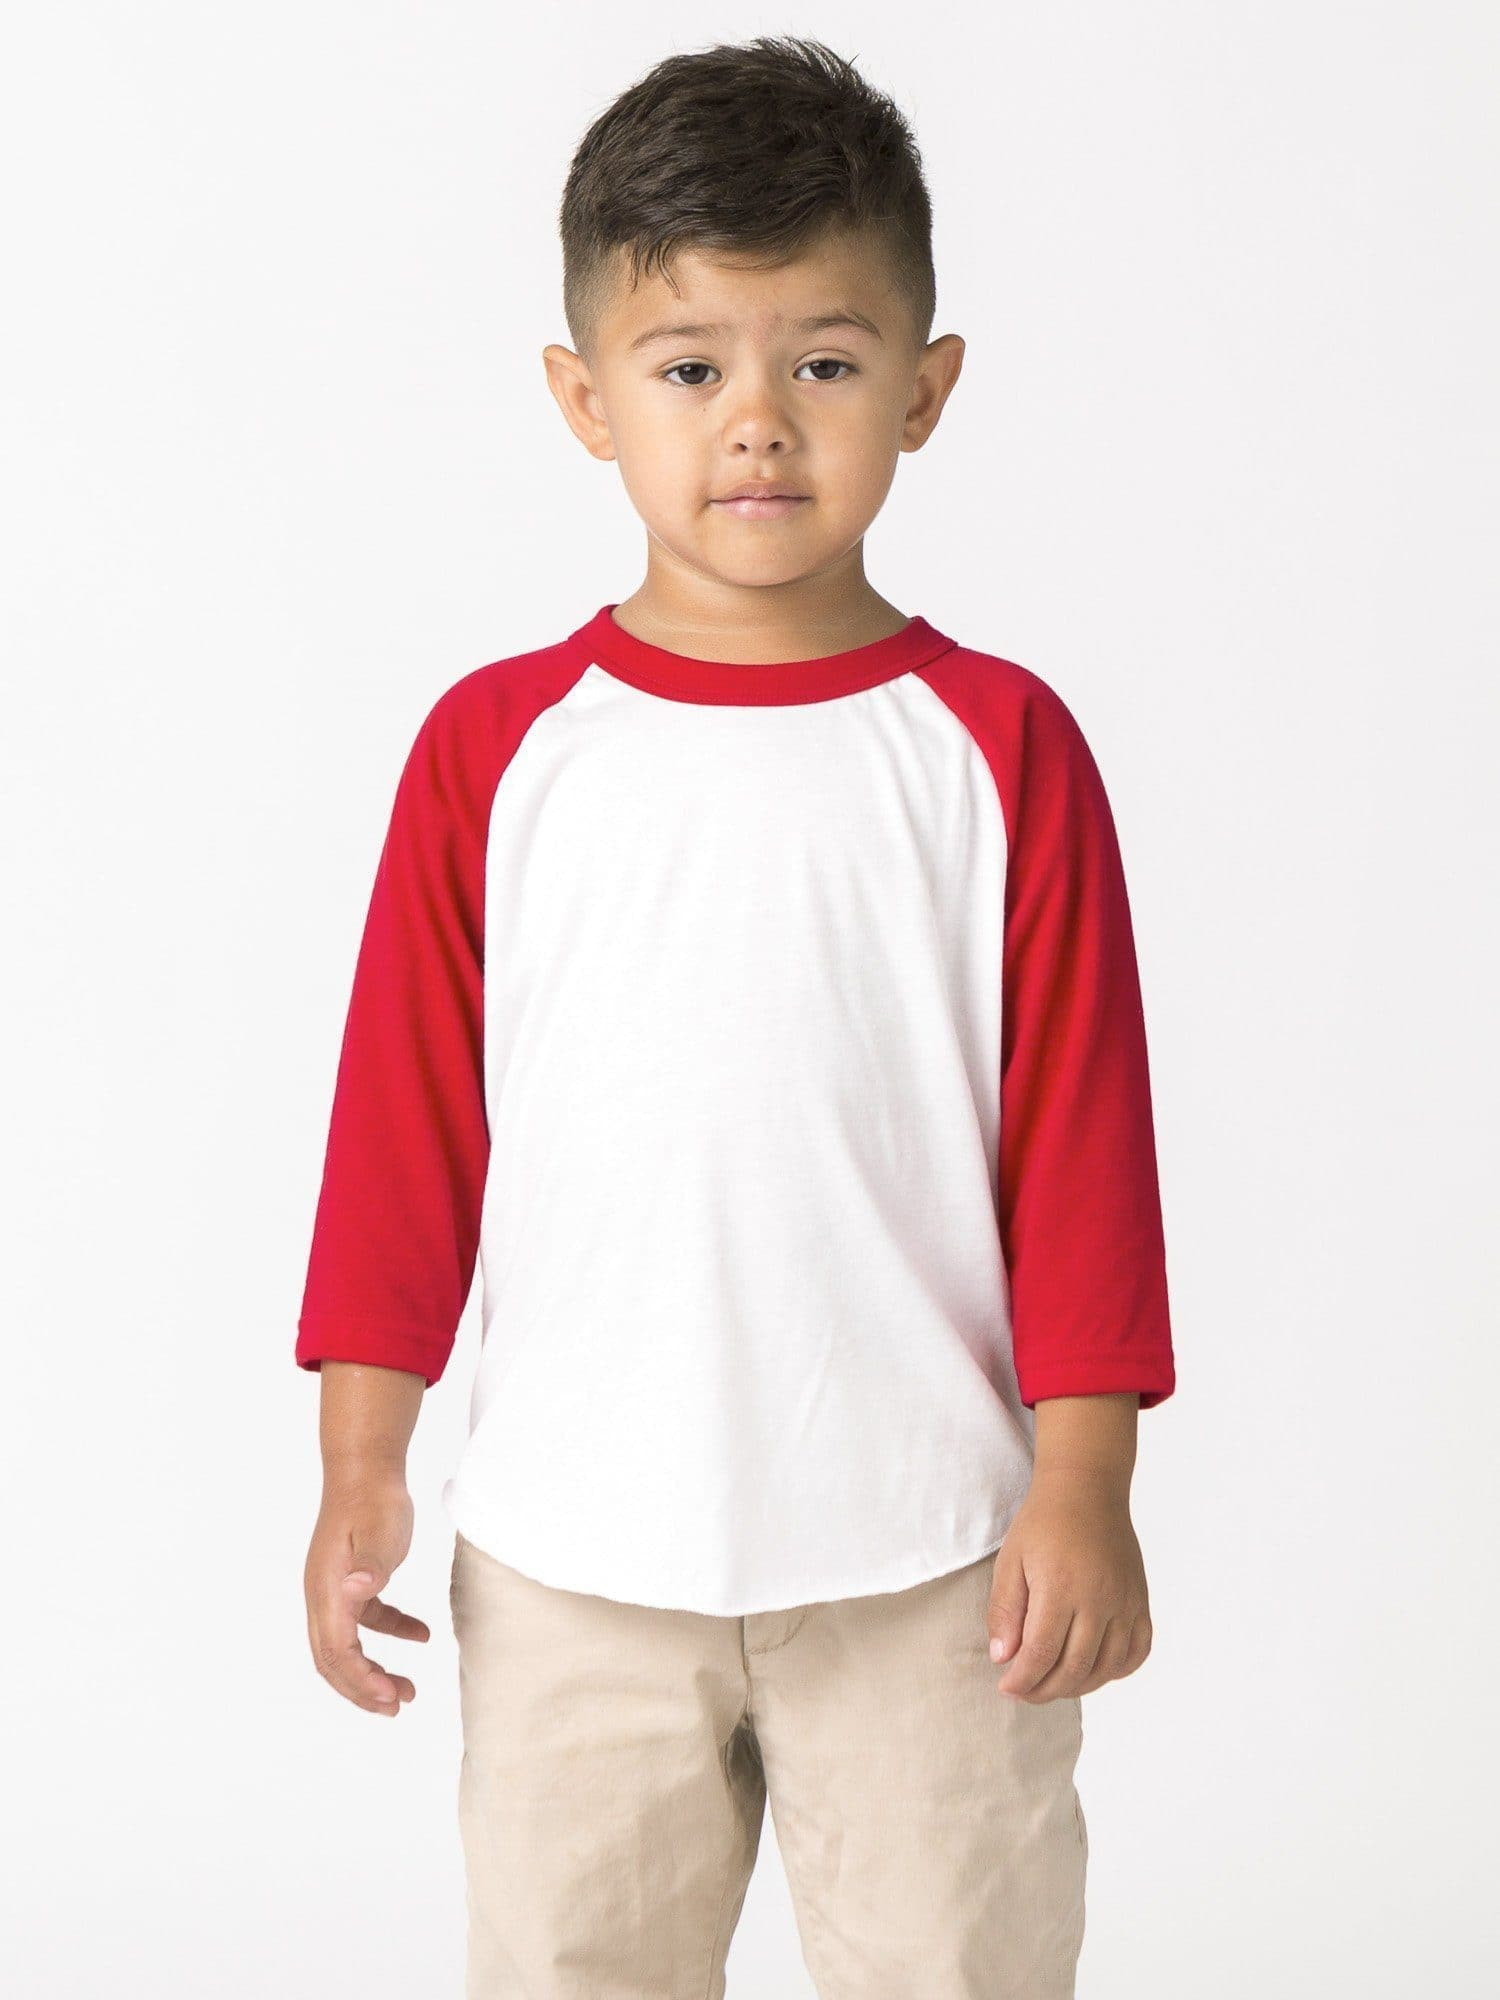 FF1053 - Toddler 3/4 Sleeve Poly Cotton Raglan